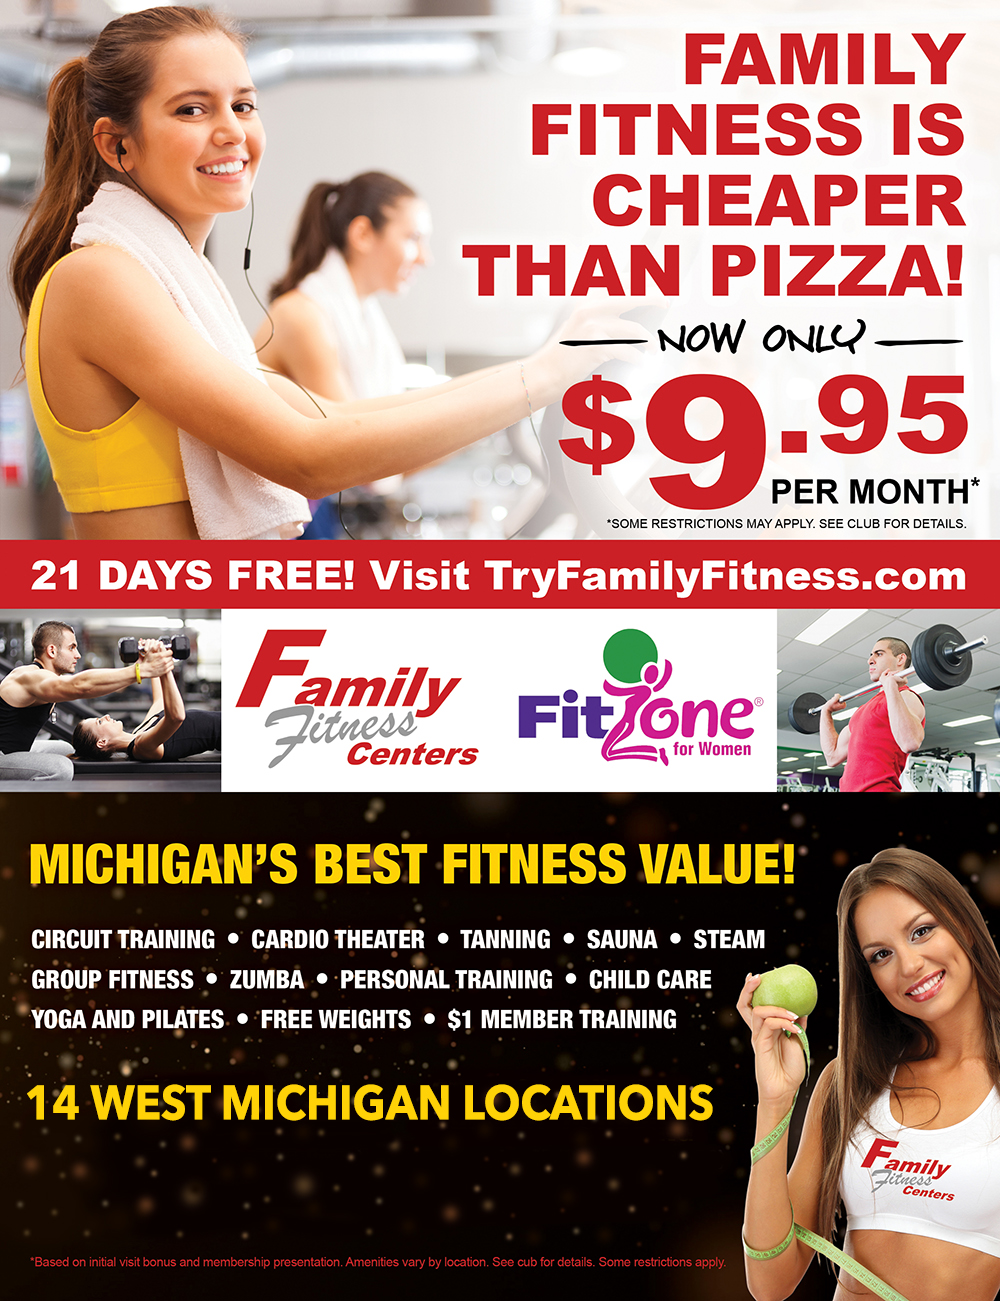 Workout for $9.95 Per Month